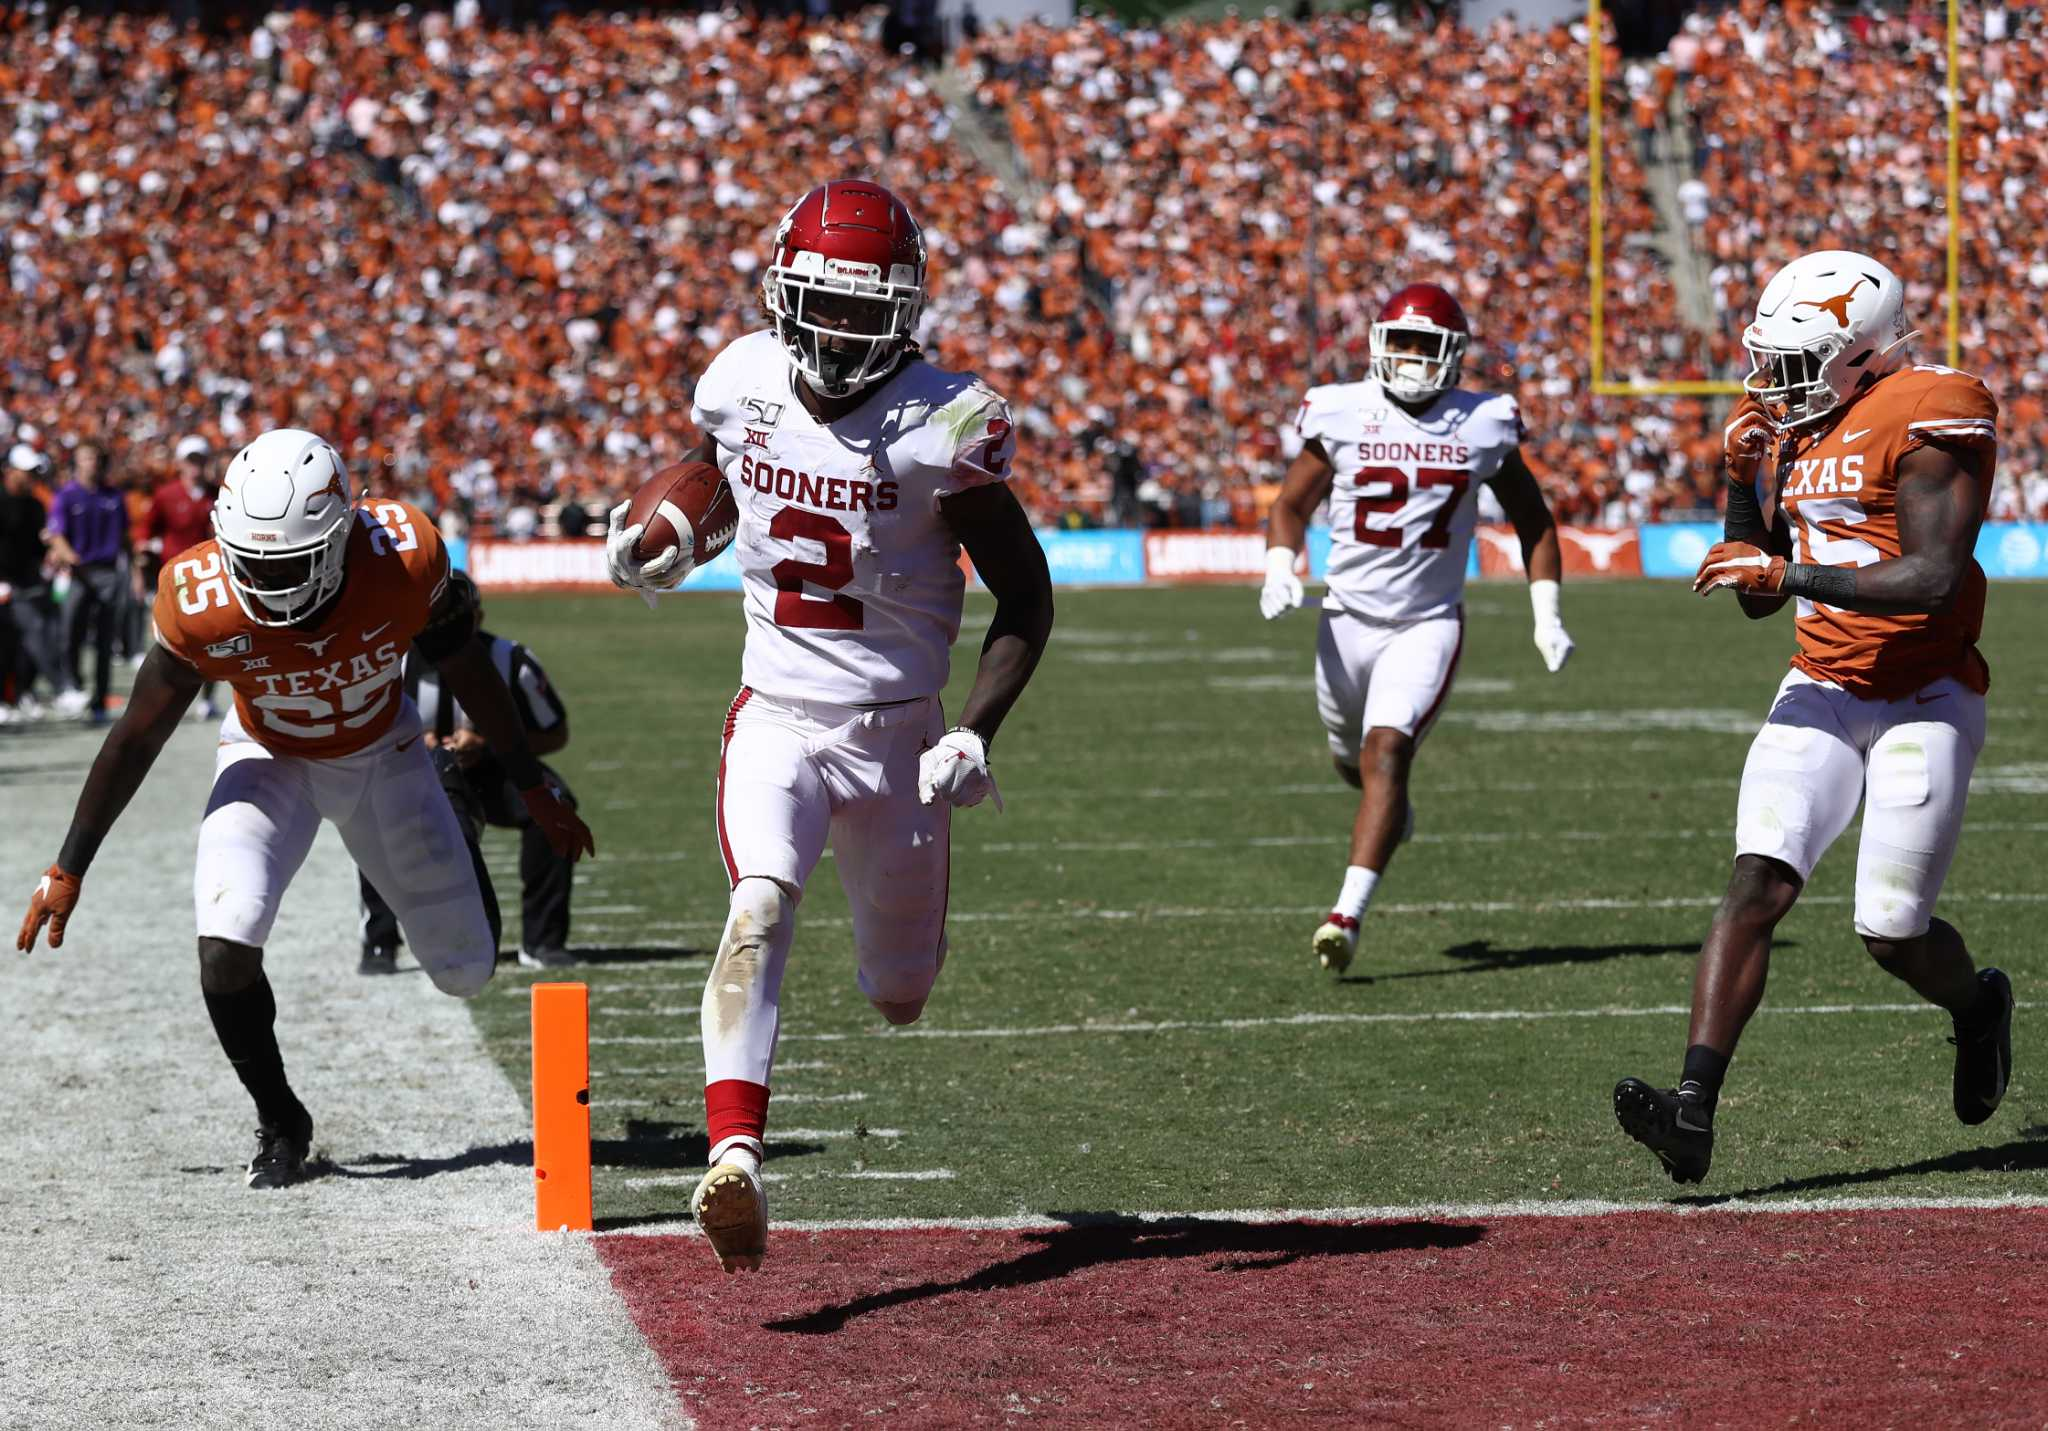 Gap between Sooners, Longhorns widening on gridiron